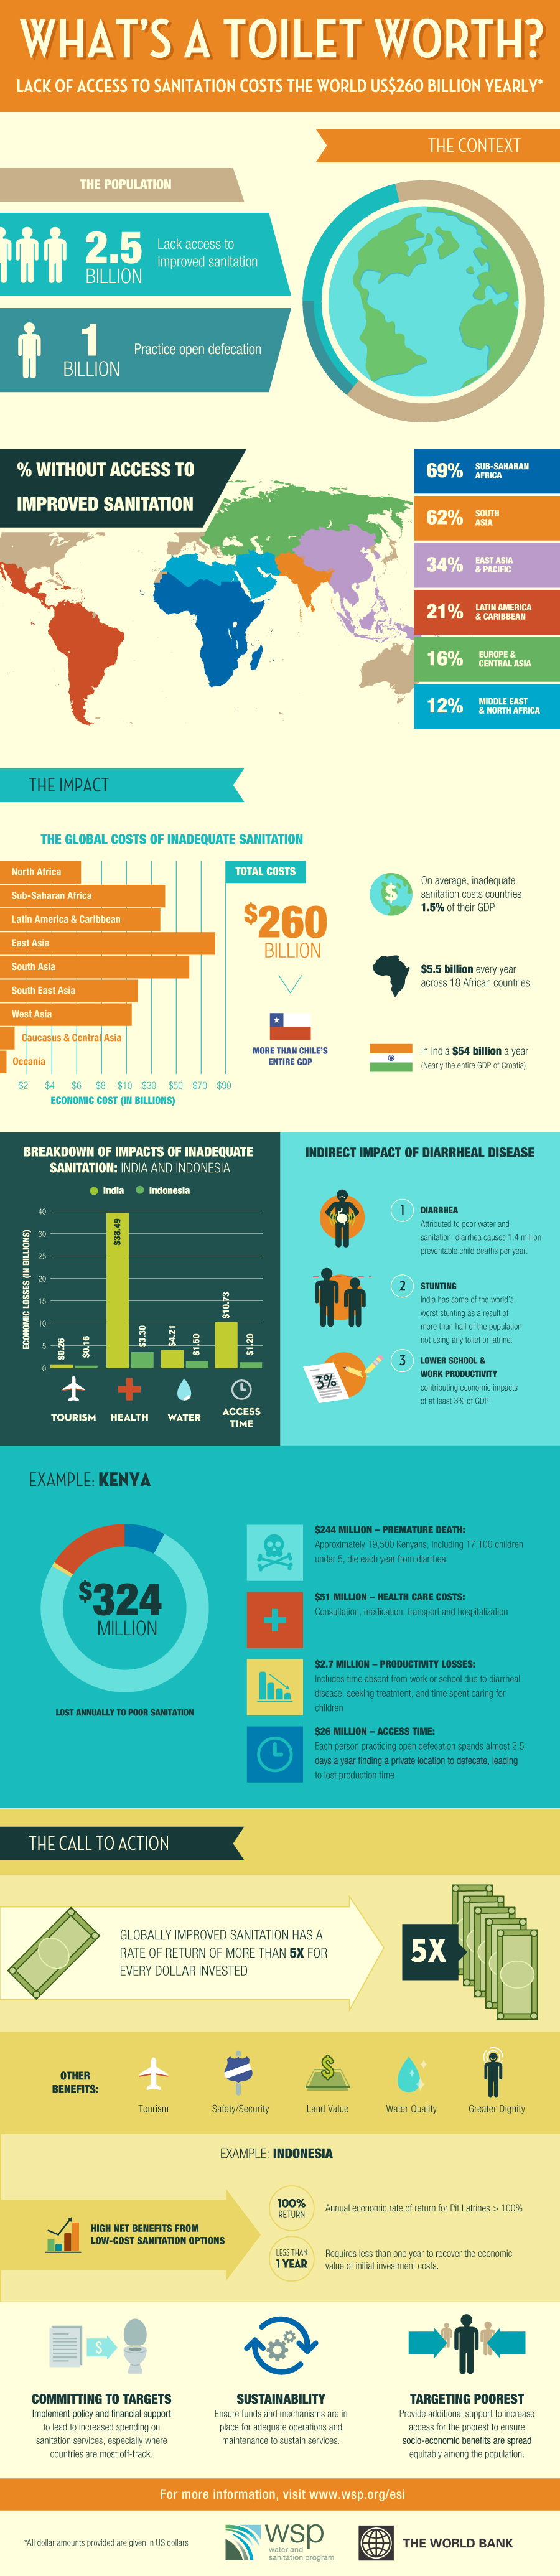 What's a Toilet Worth? The economics of sanitation - infographic